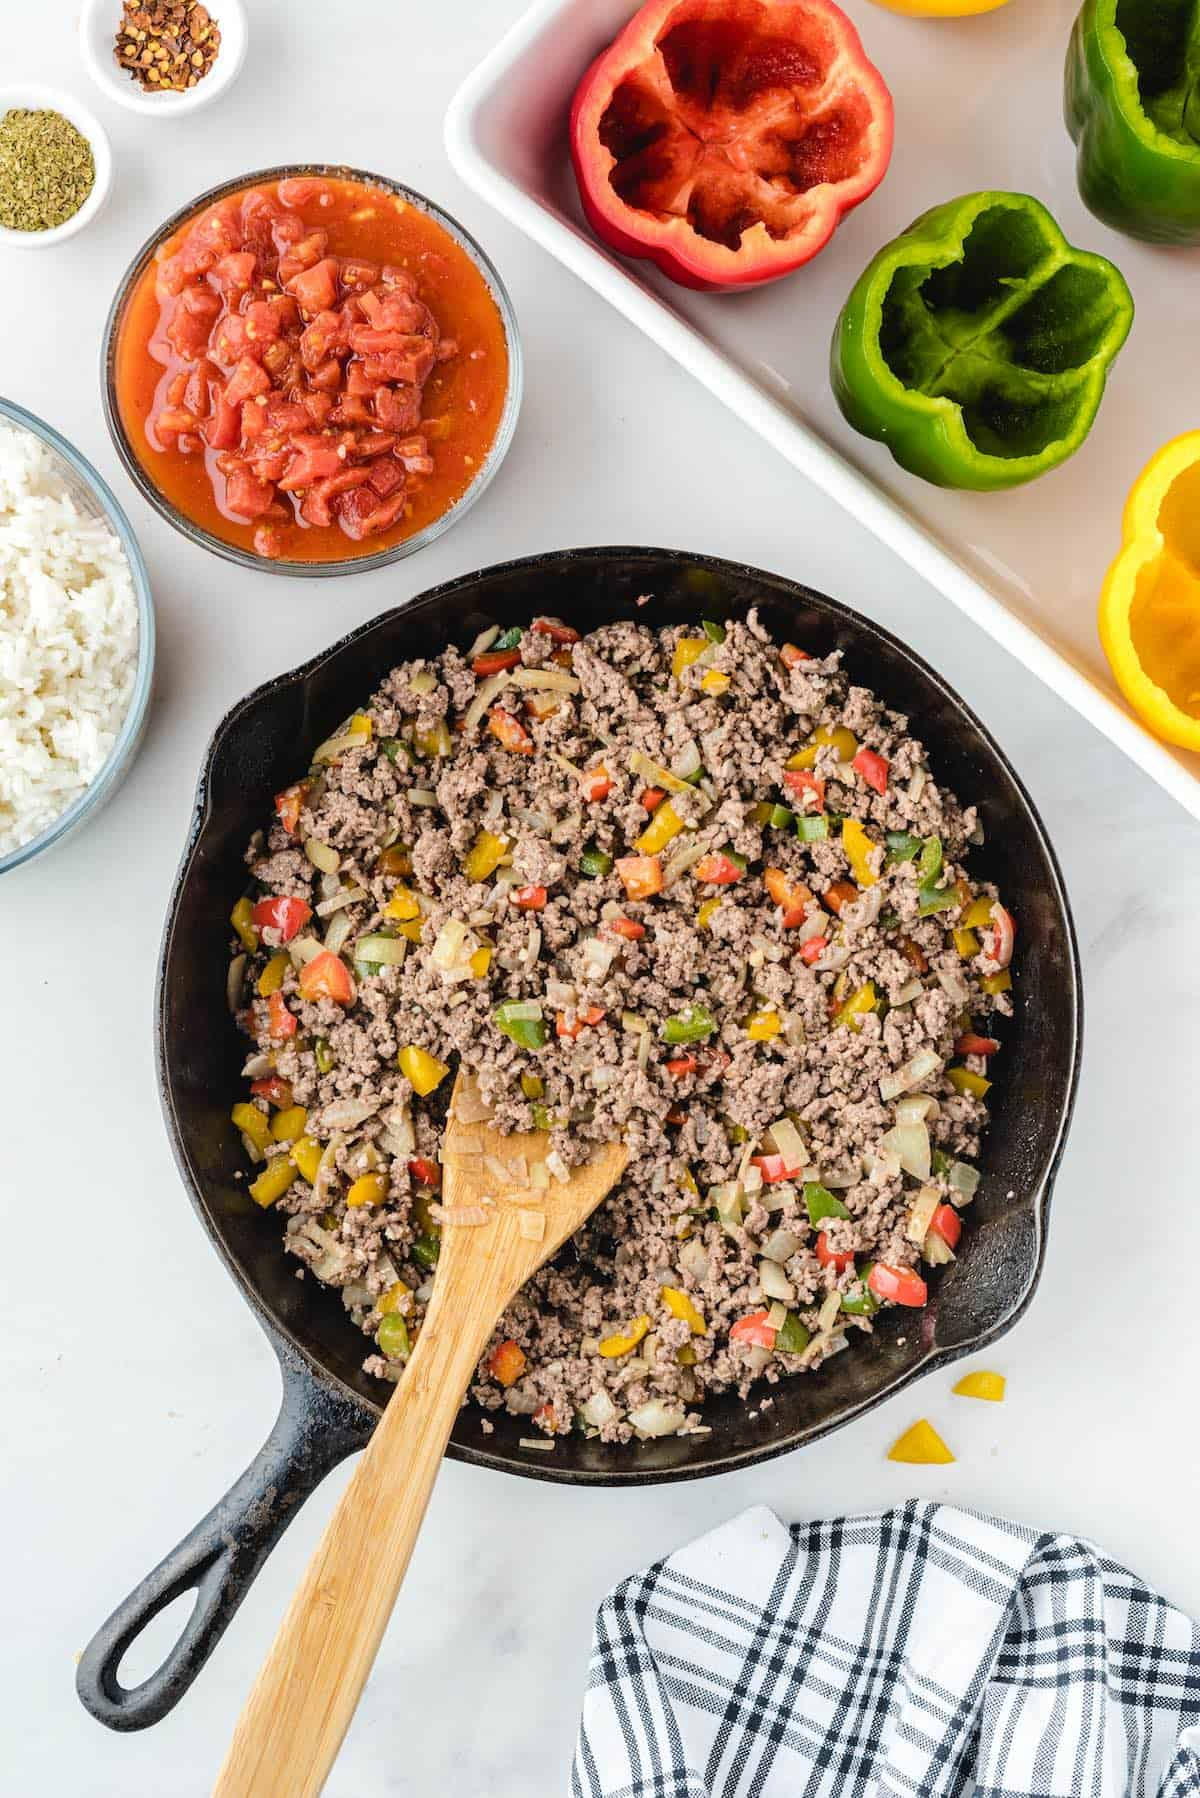 ground beef and garlic mix together in a pan